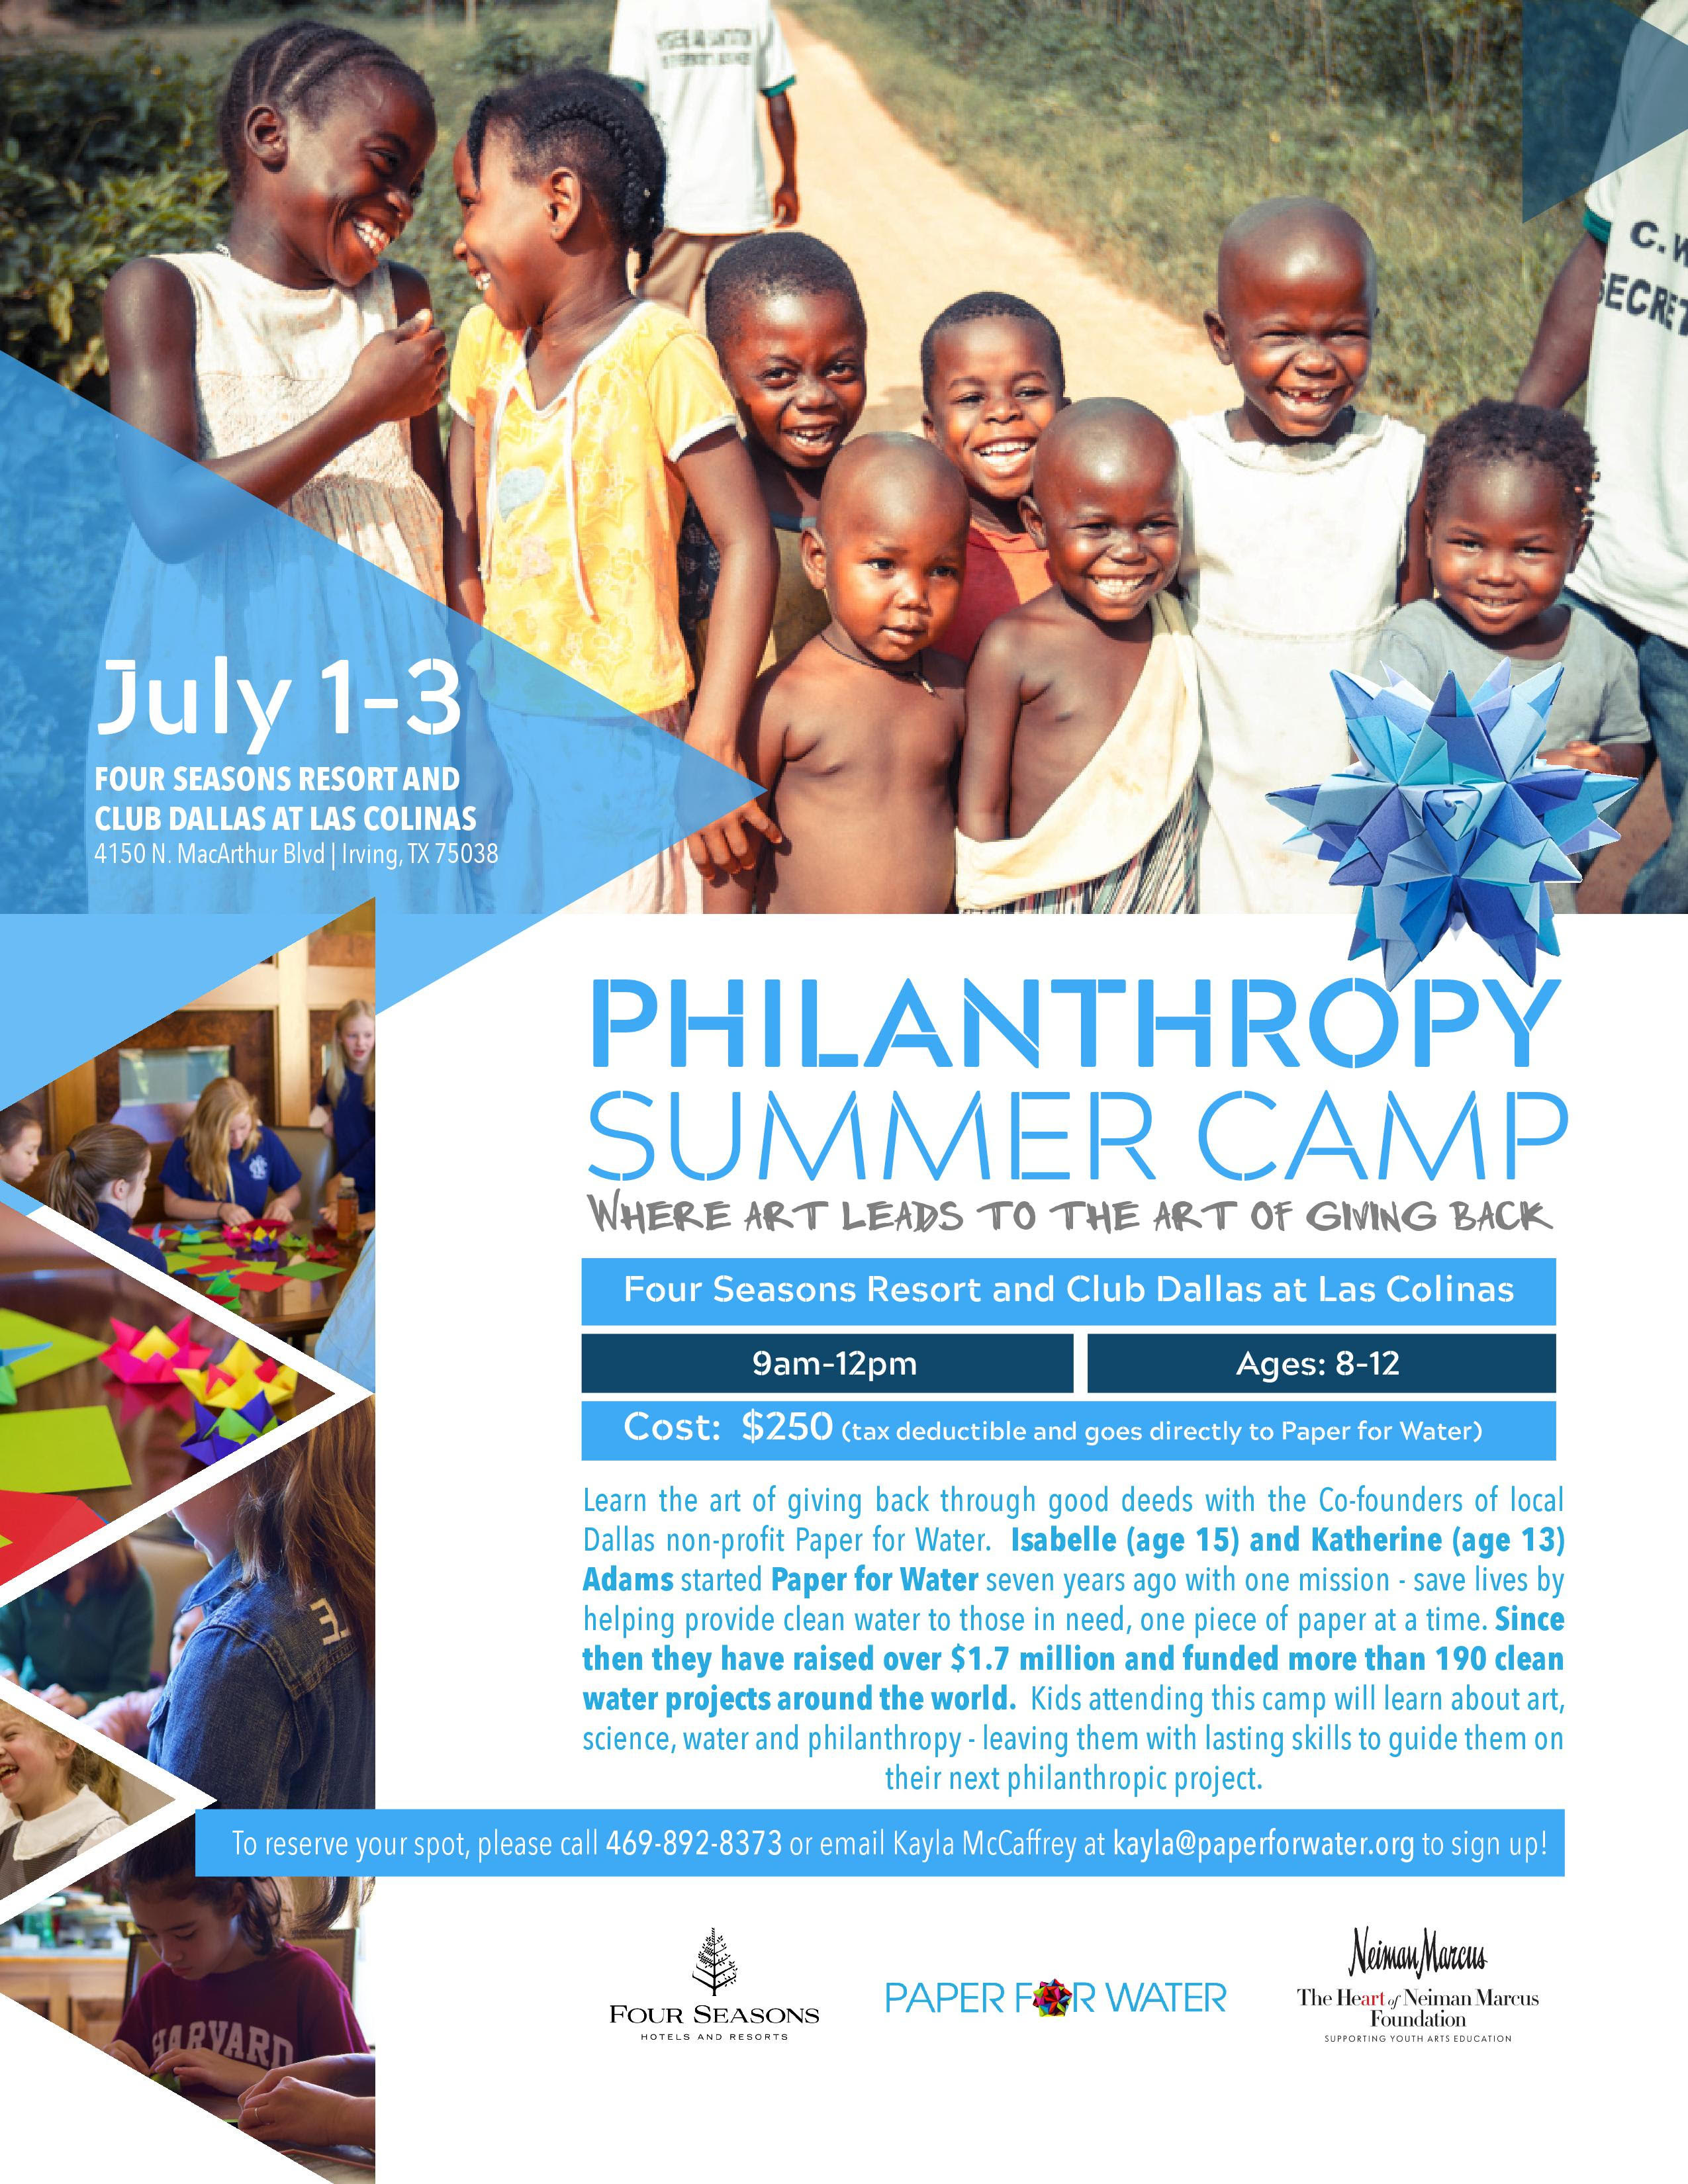 Paper for water philanthropy summer camp